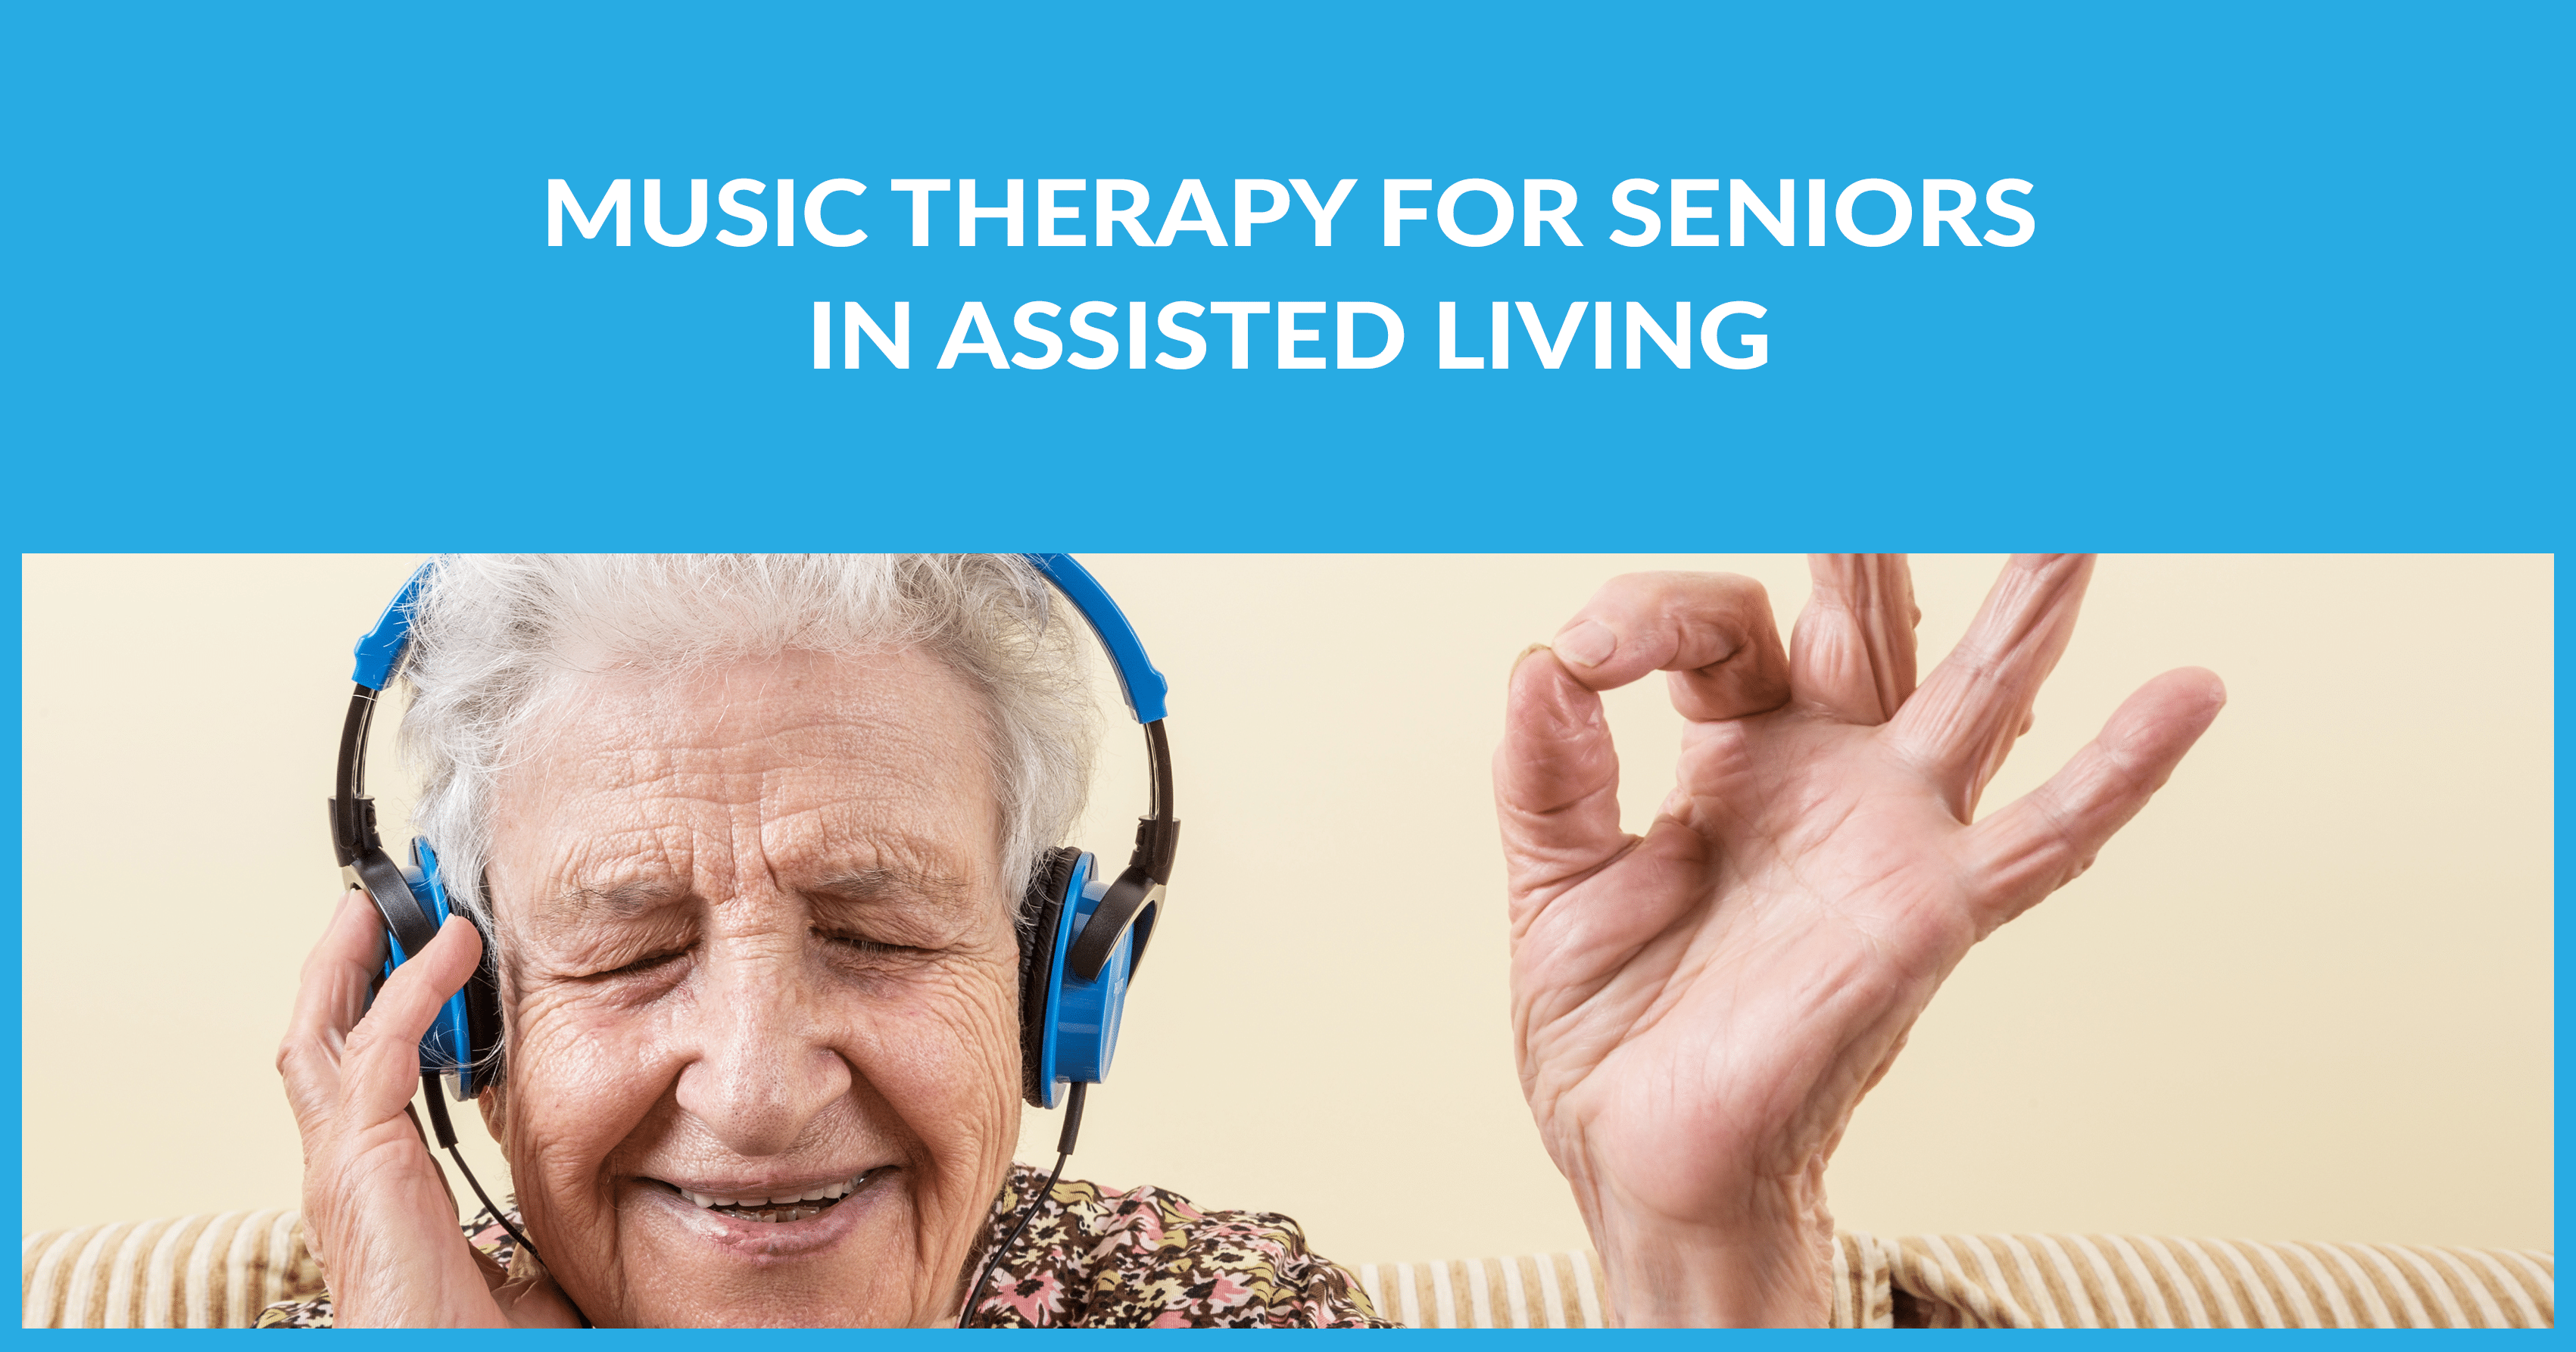 Music Therapy for Seniors in Assisted Living